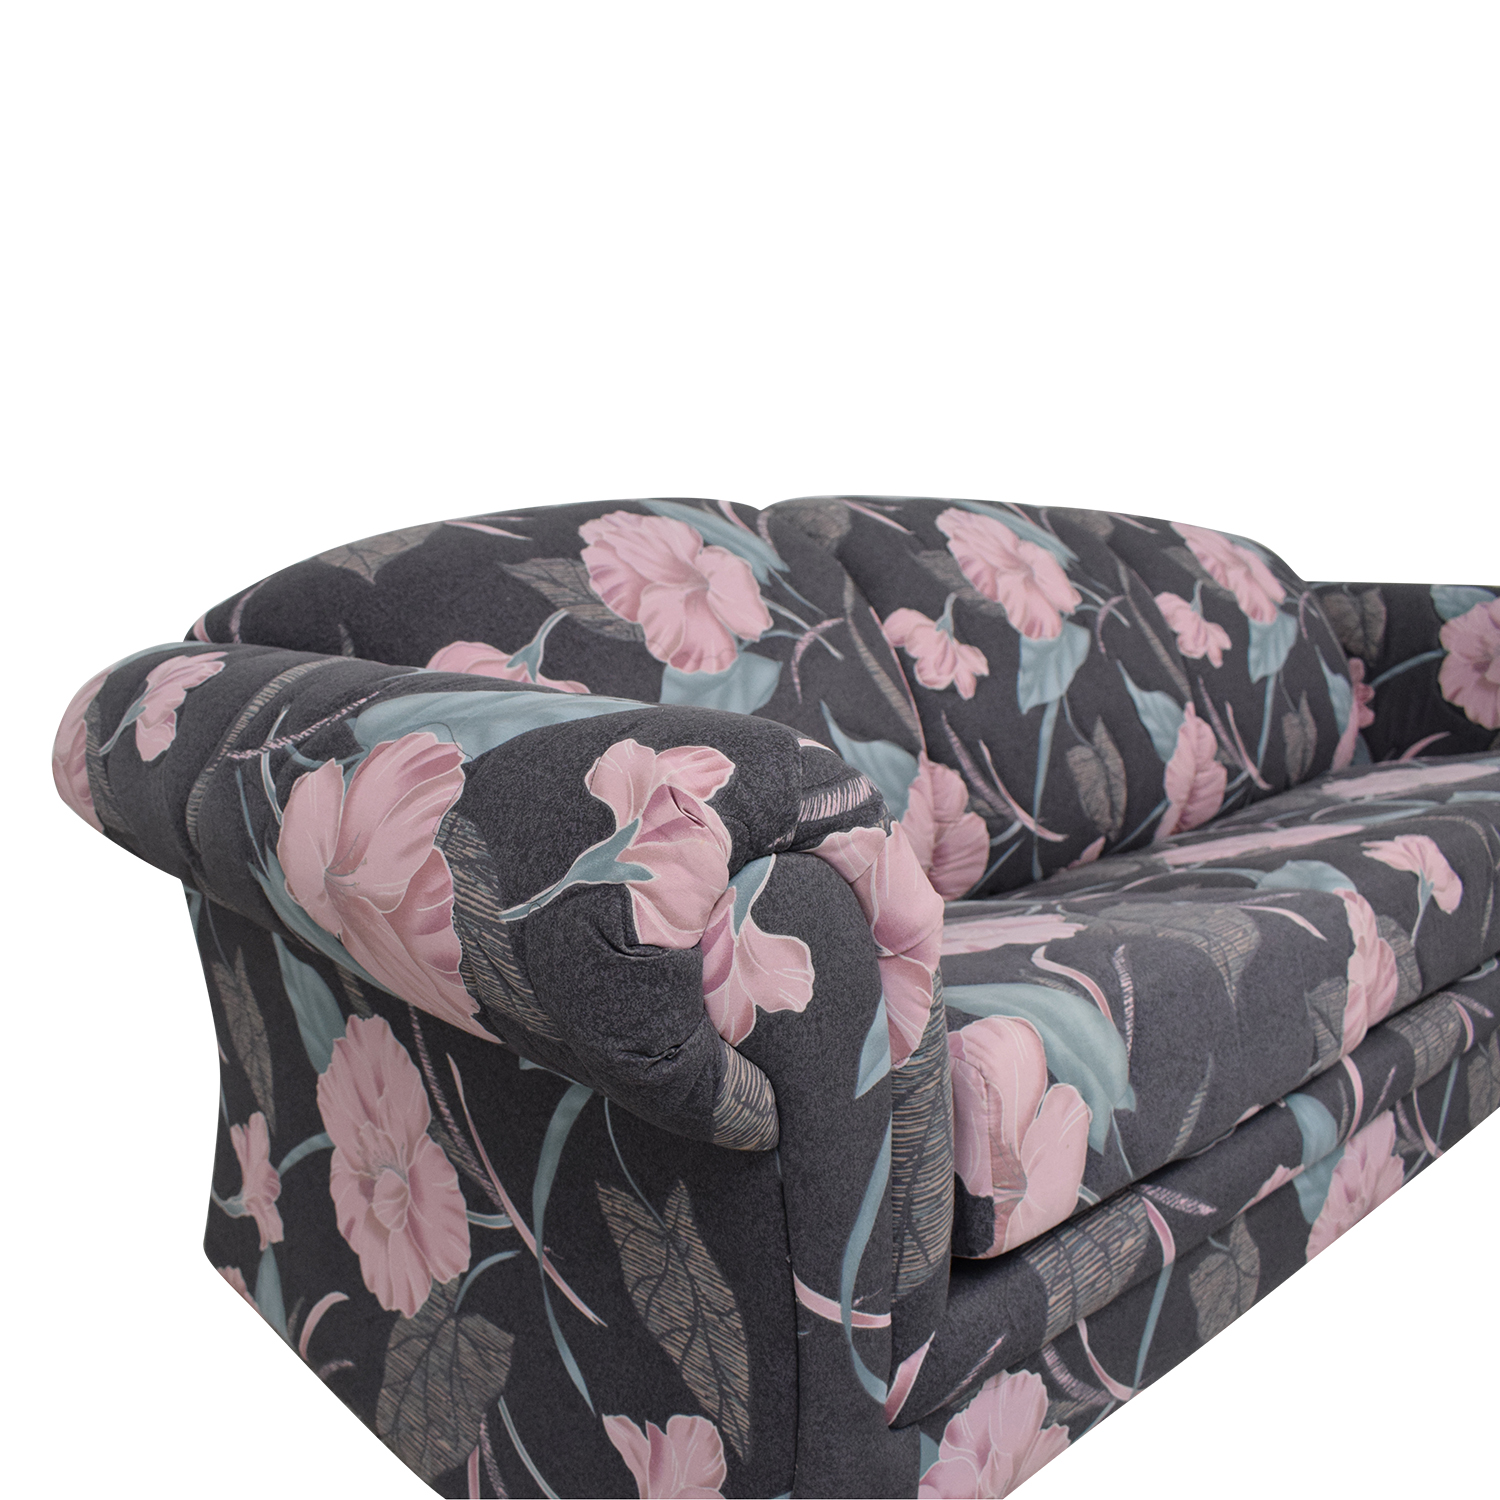 Floral Upholstered Queen Sleeper Sofa sale